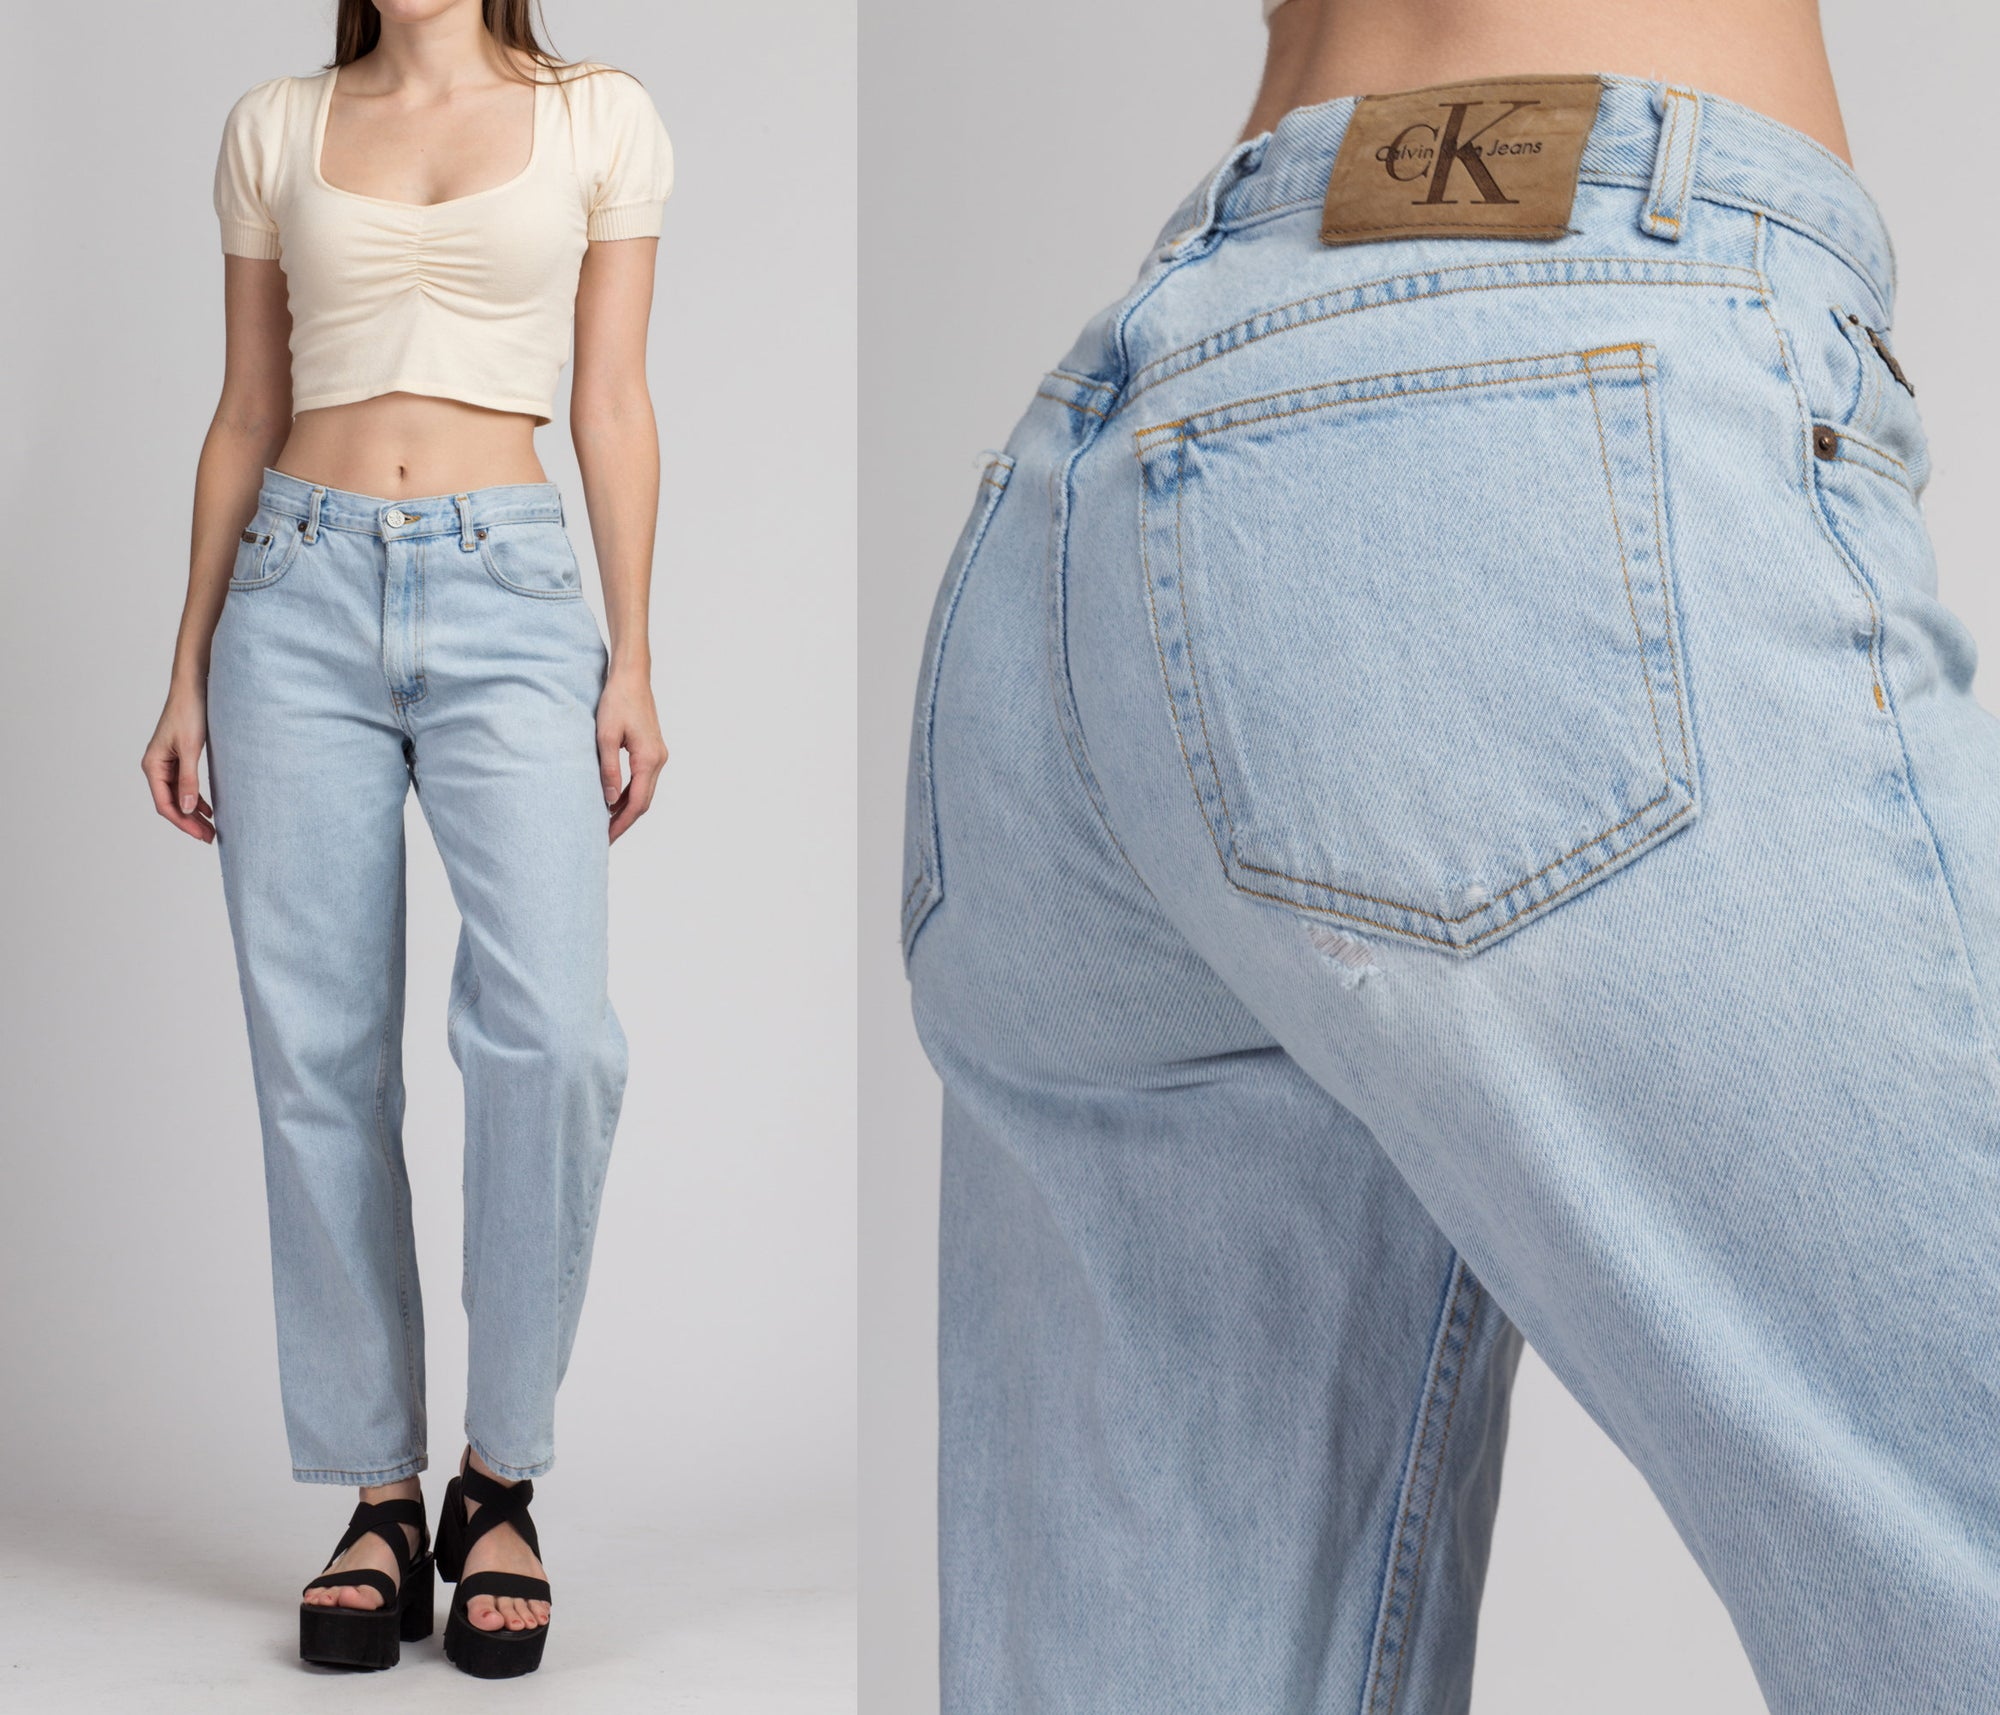 90s Calvin Klein High Waisted Jeans - Medium, 29""